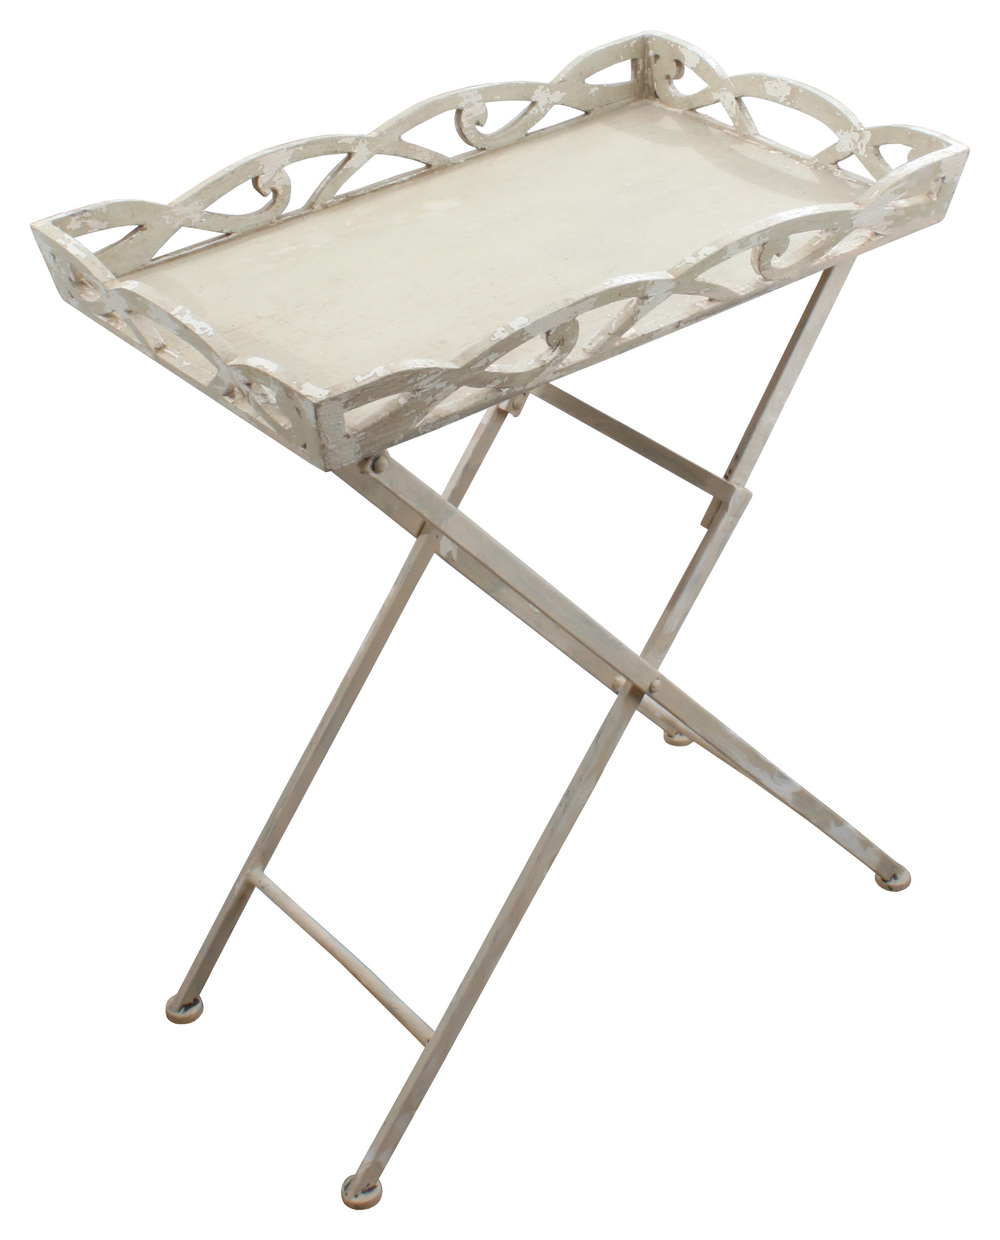 U20ac120 WOODEN/METAL TRAY TABLE IN ANTIQUE CREAM COLOR 63X49X77